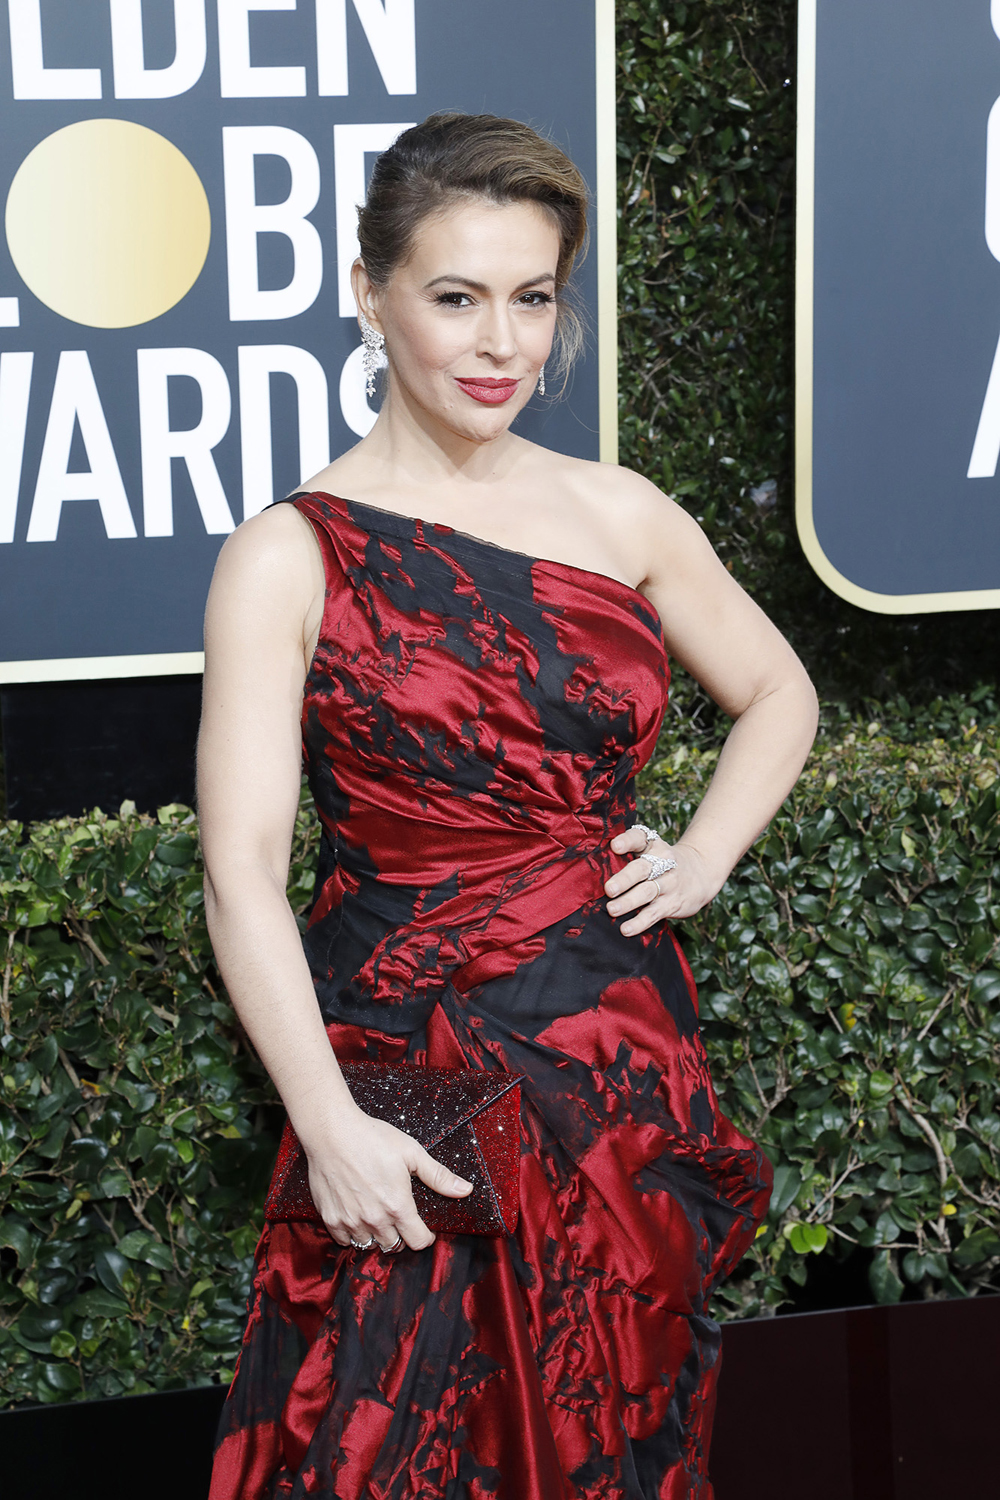 Alyssa Milano arrives for the 76th Golden Globe Awards at the Beverly Hilton Hotel in Beverly Hills, Calif., on Jan. 6.